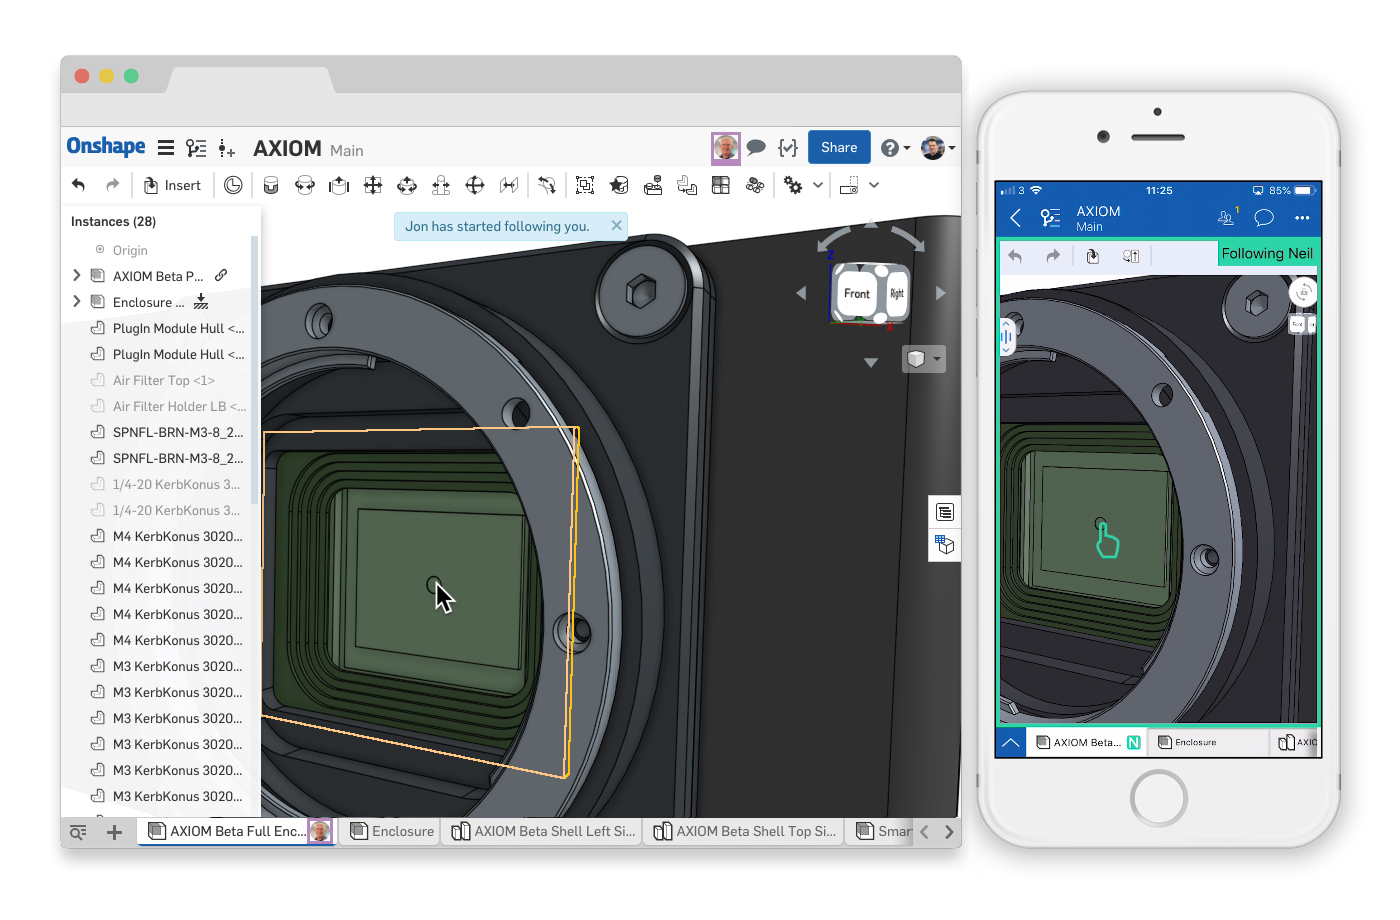 Follow mode in Onshape